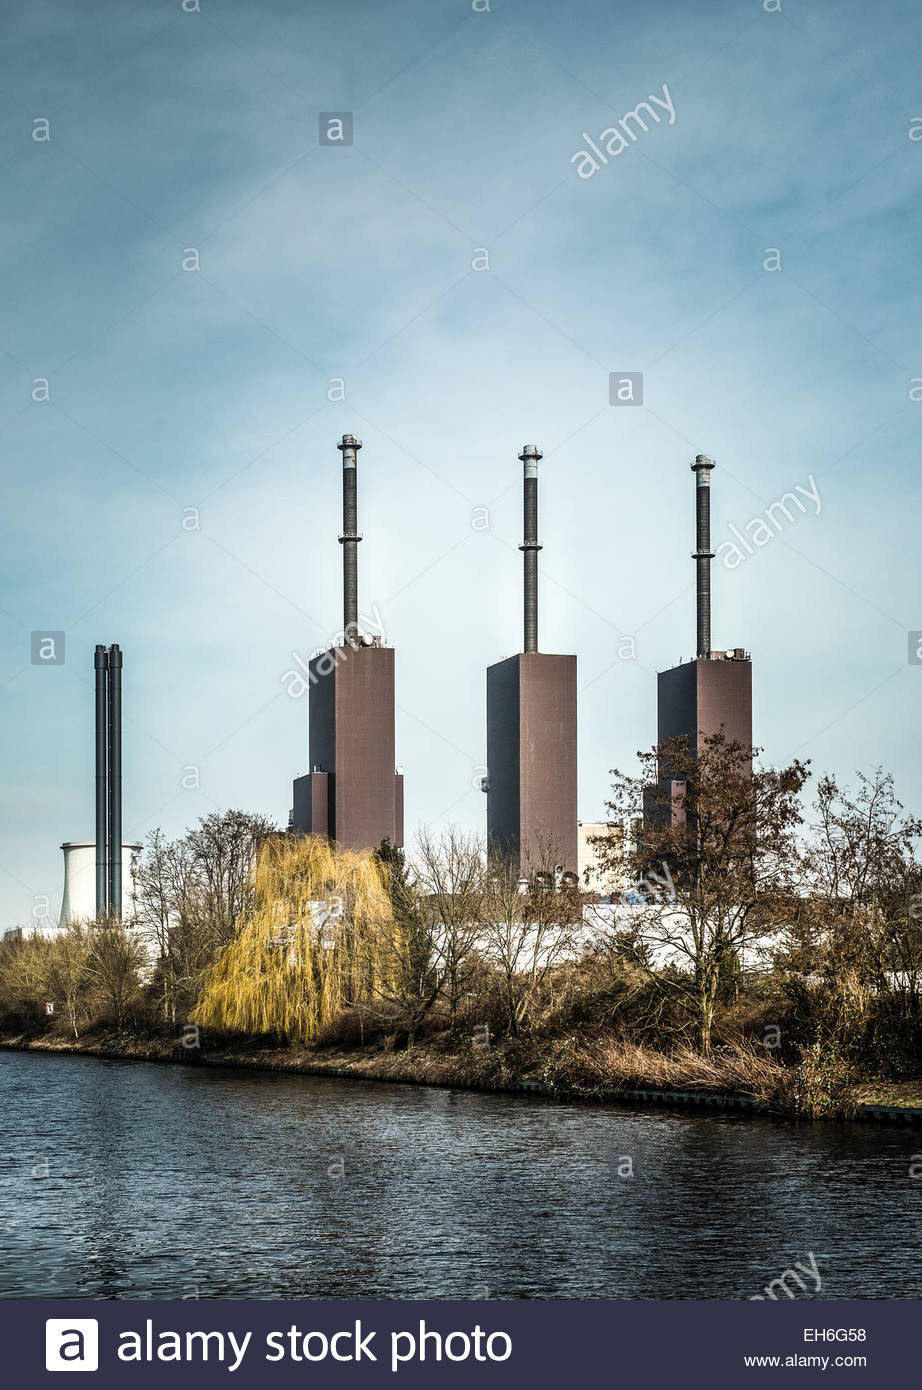 Generating Power Station Industry - Stock Image